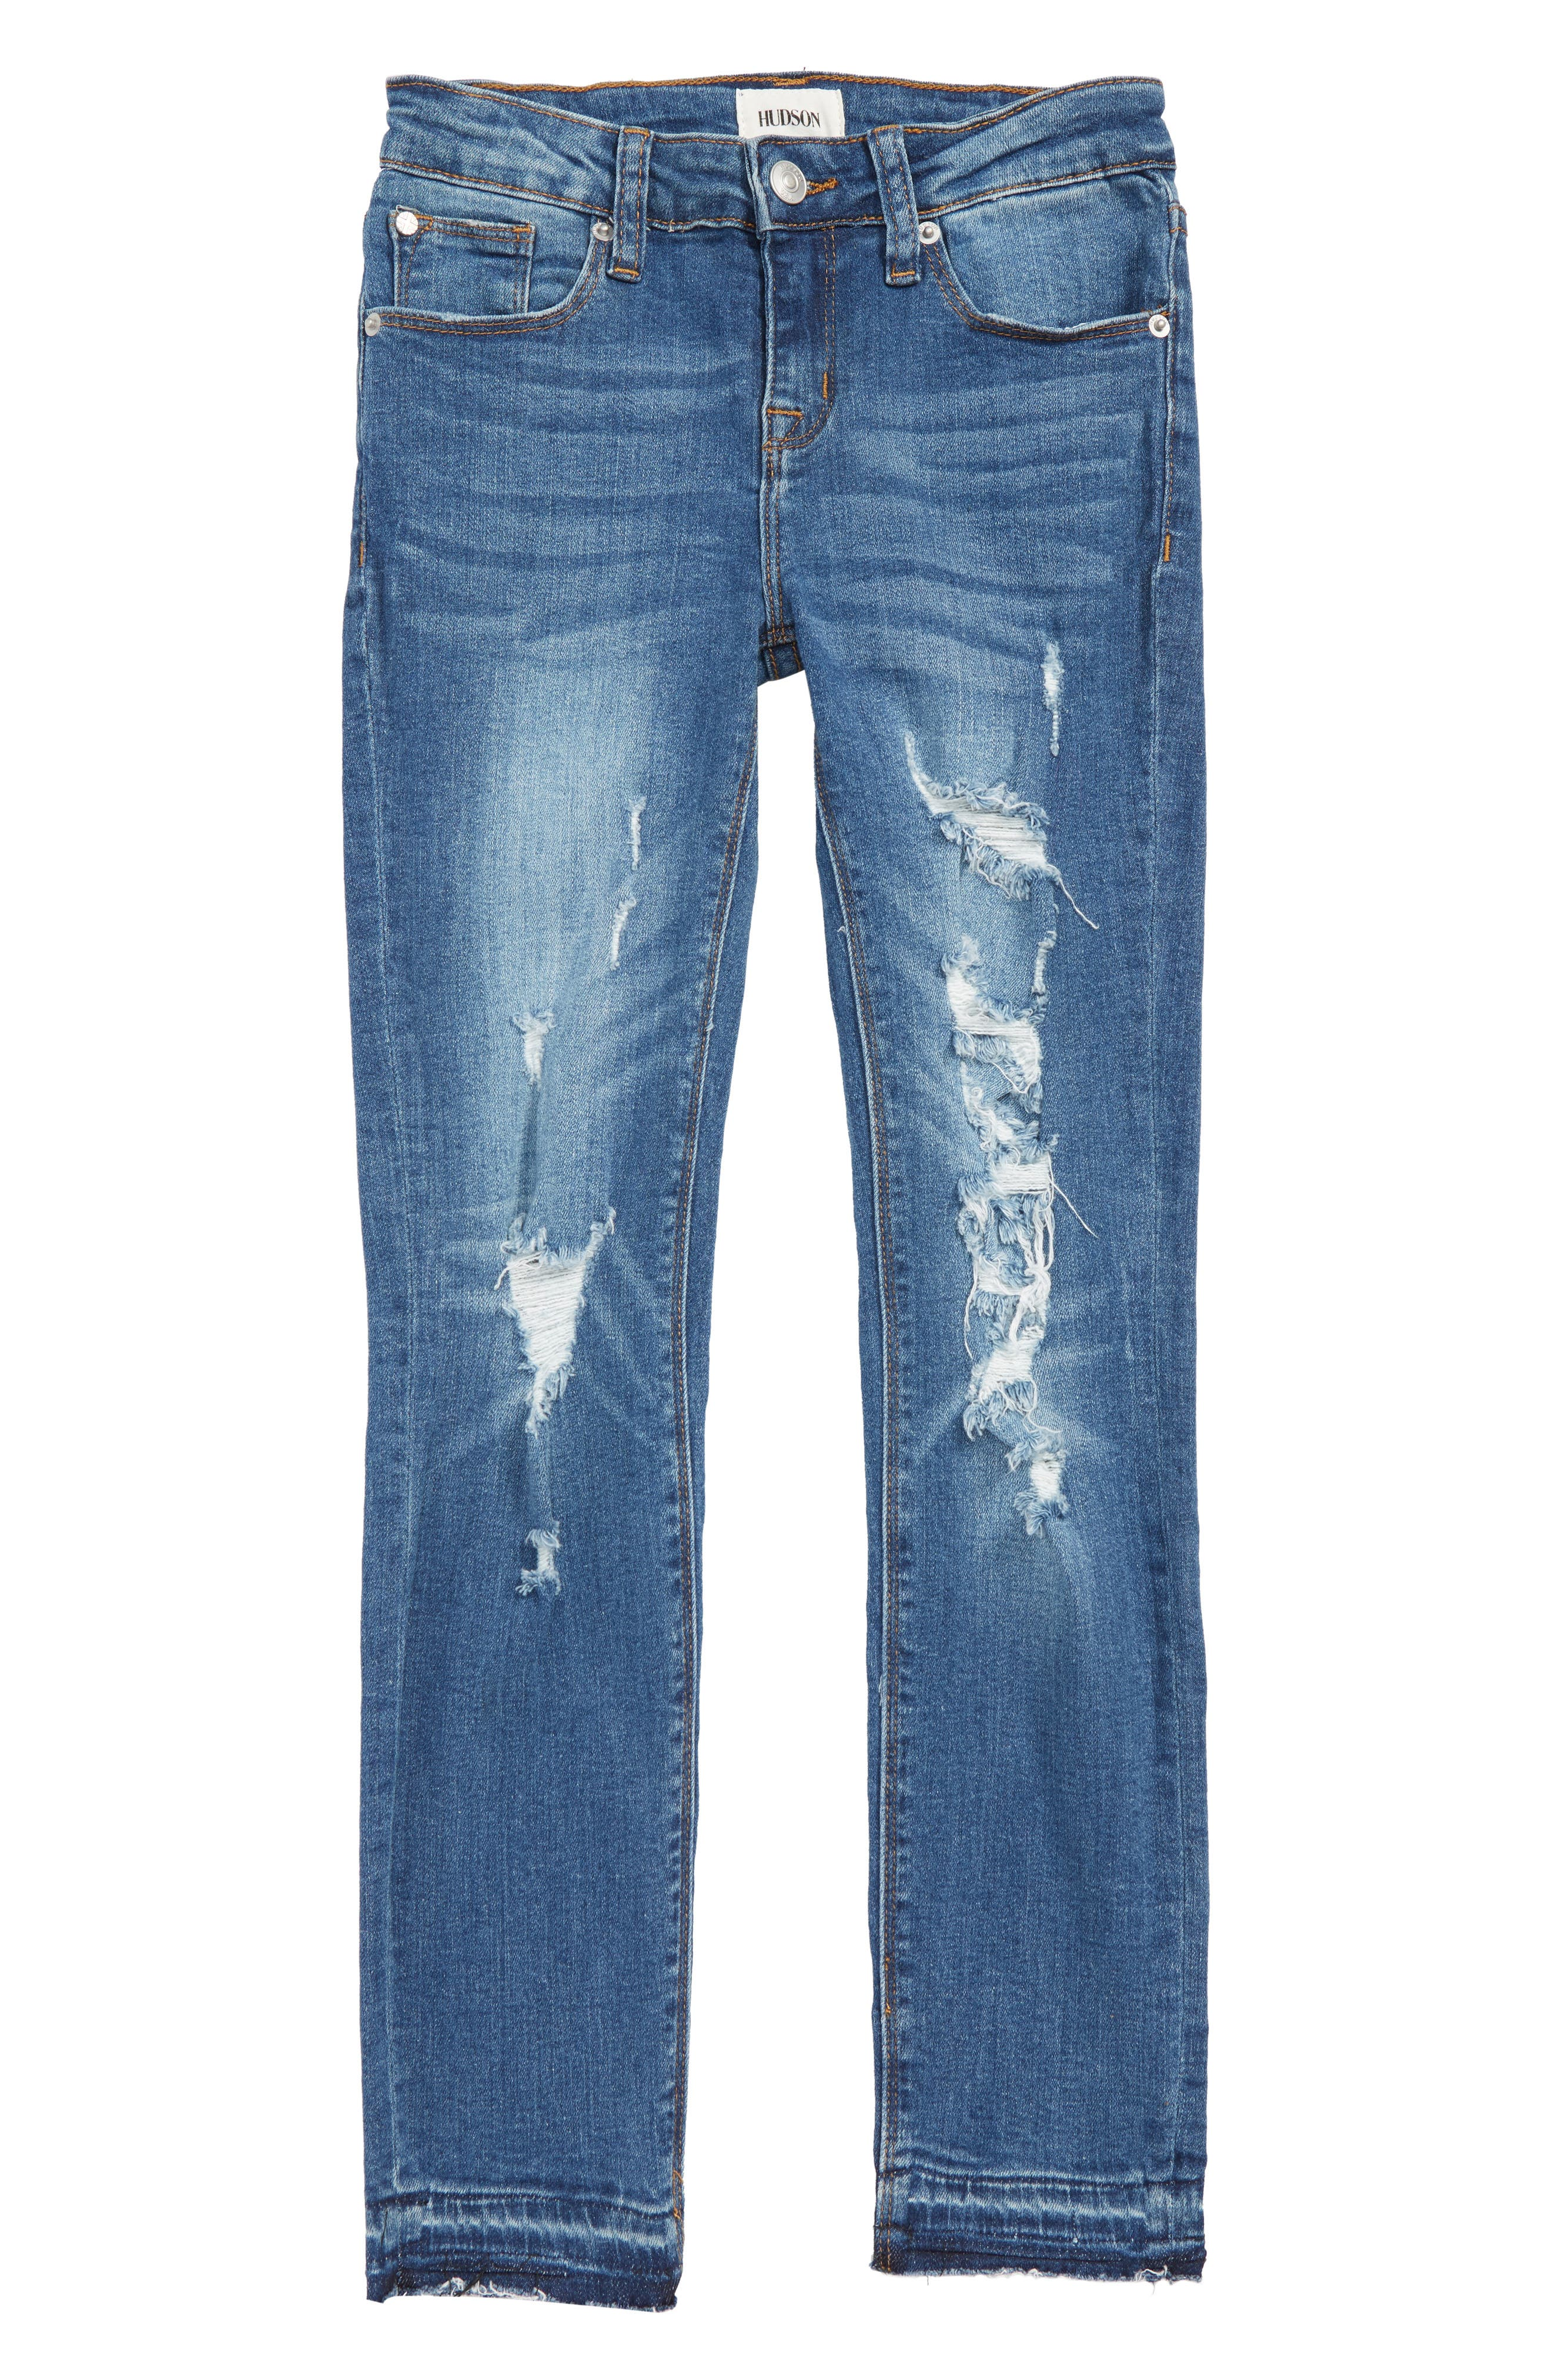 Deja Ripped Crop Jeans,                             Main thumbnail 1, color,                             464